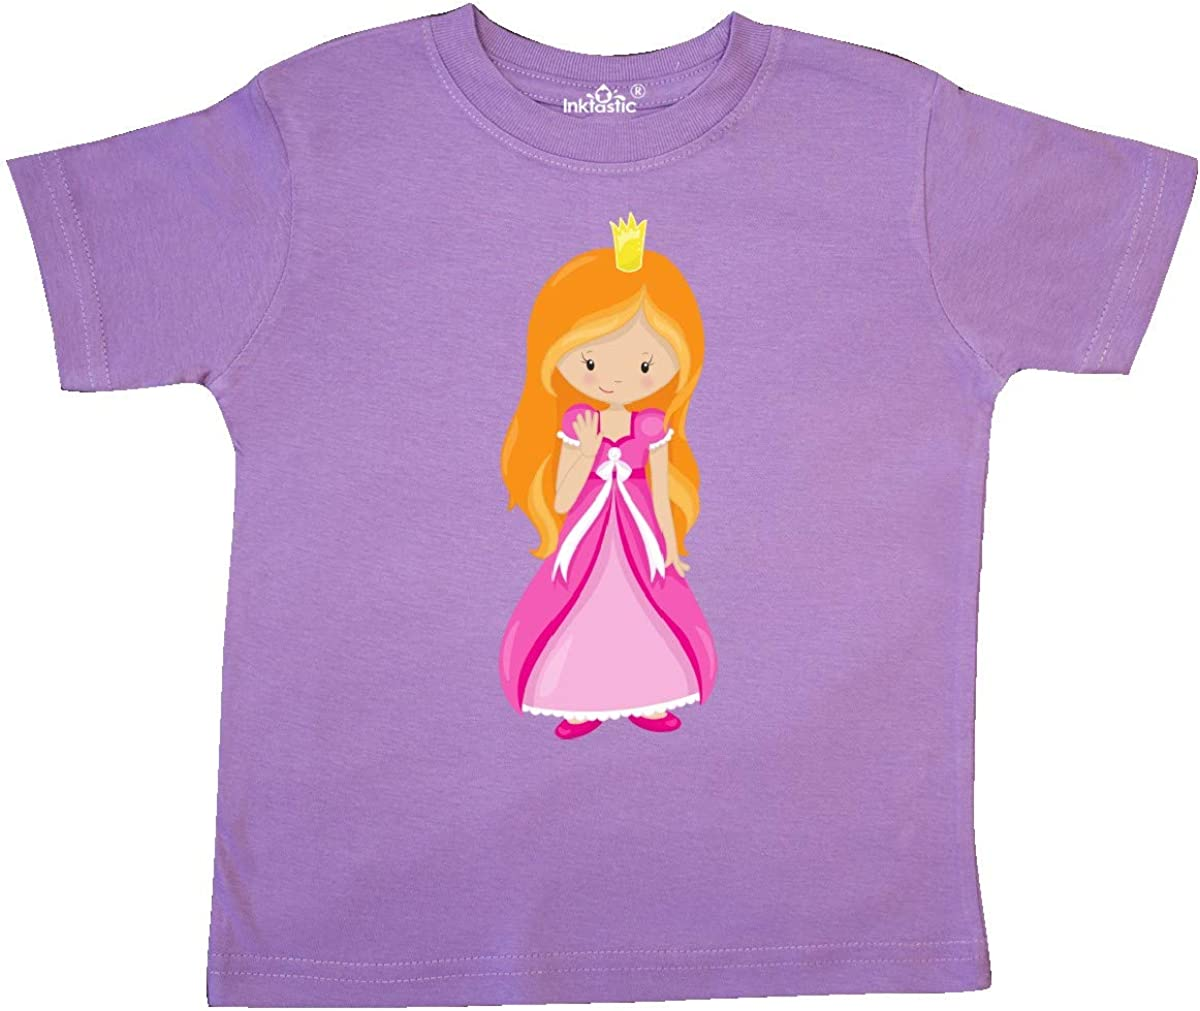 Orange Hair inktastic Cute Princess Princess in Pink Dress Toddler T-Shirt